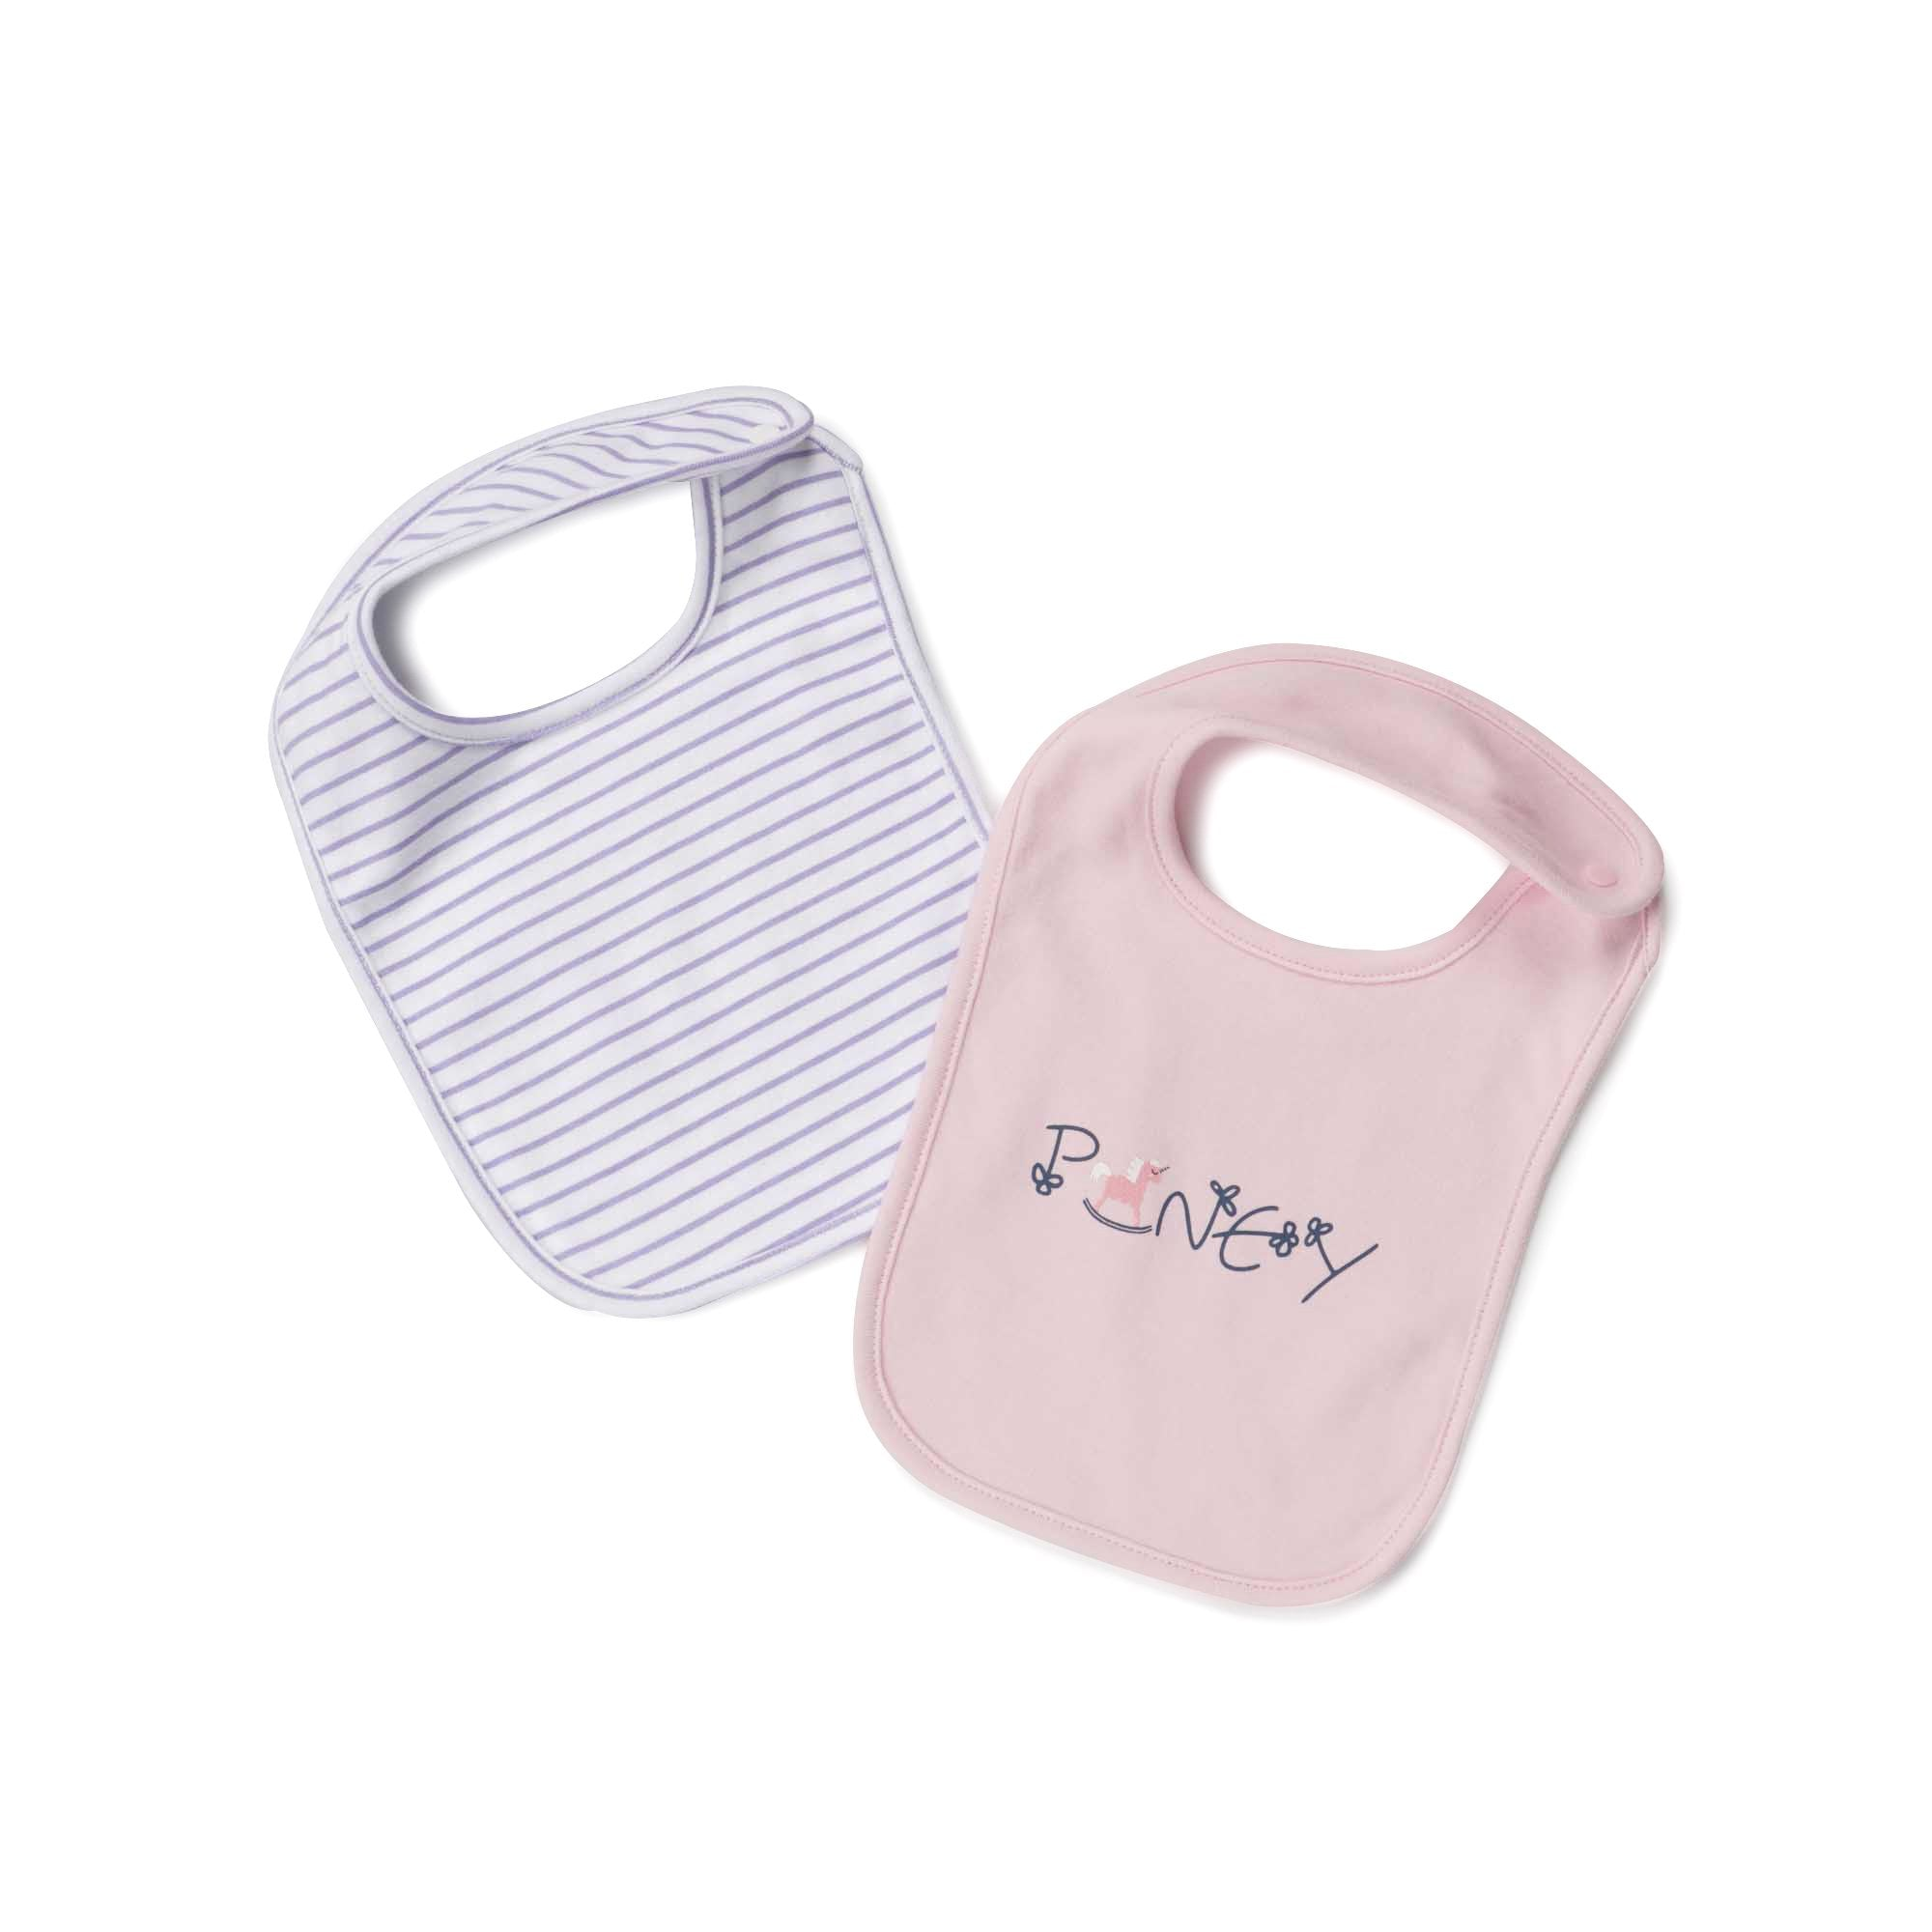 Poney Essential Girls 2-Pack Bibs 80065